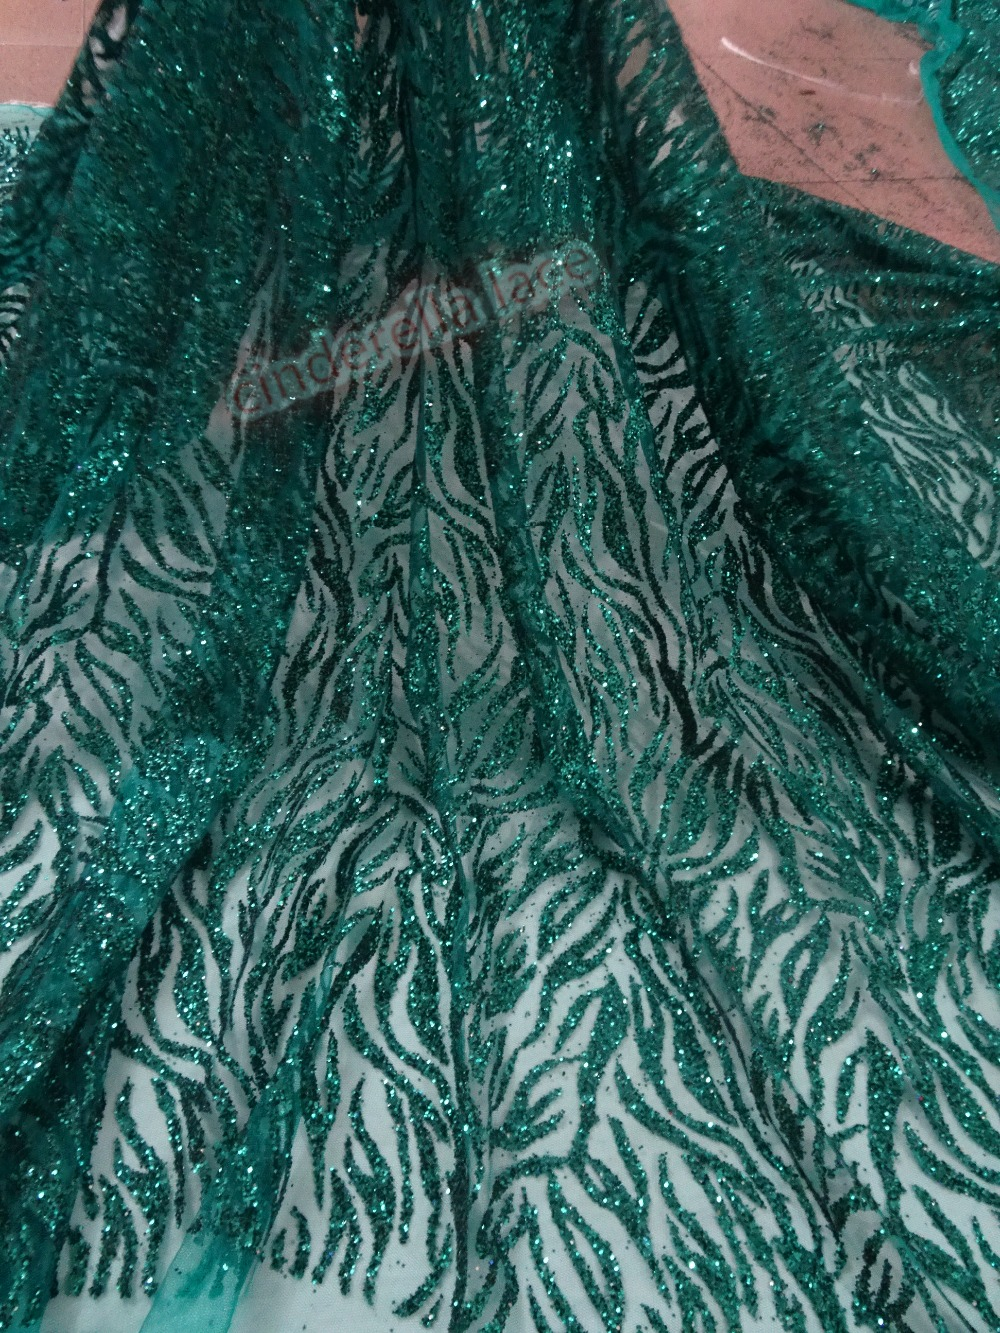 5yards lot pretty JIANXI C 42078 glued glitter design African tulle lace fabric with good